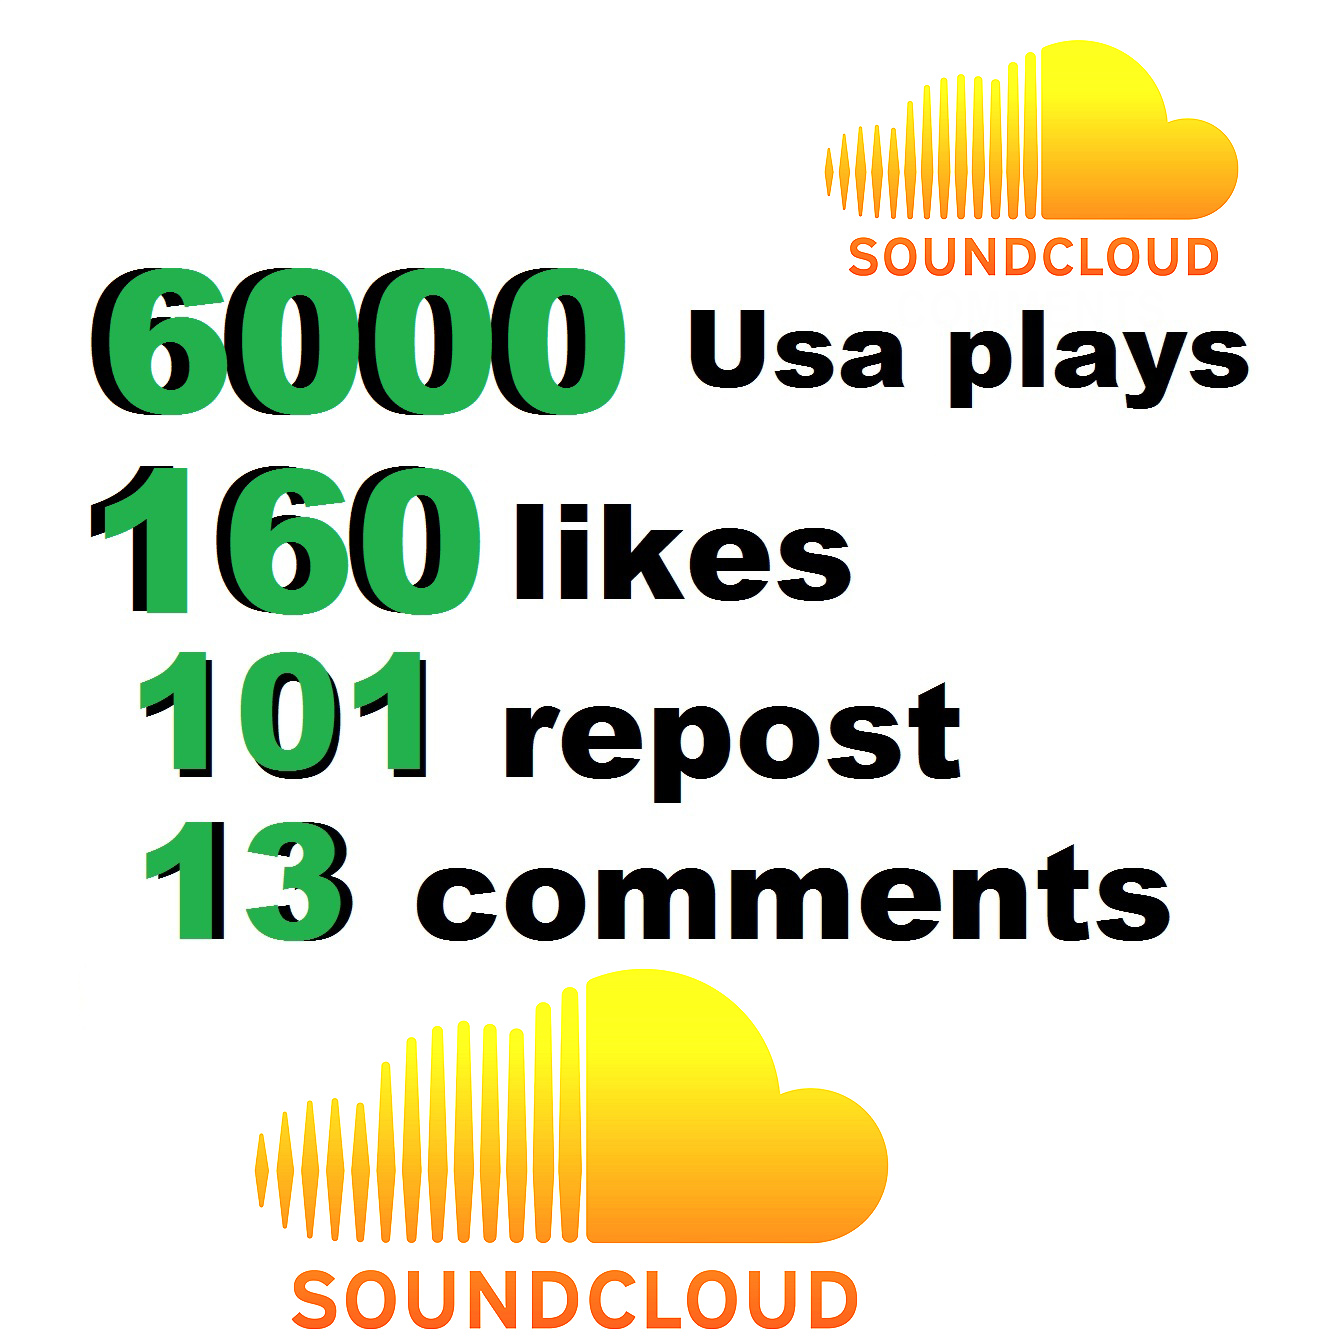 Provide 6000 usa soundcloud plays 160 soundcloud likes 101 soundcloud repost soundcloud 16 comments